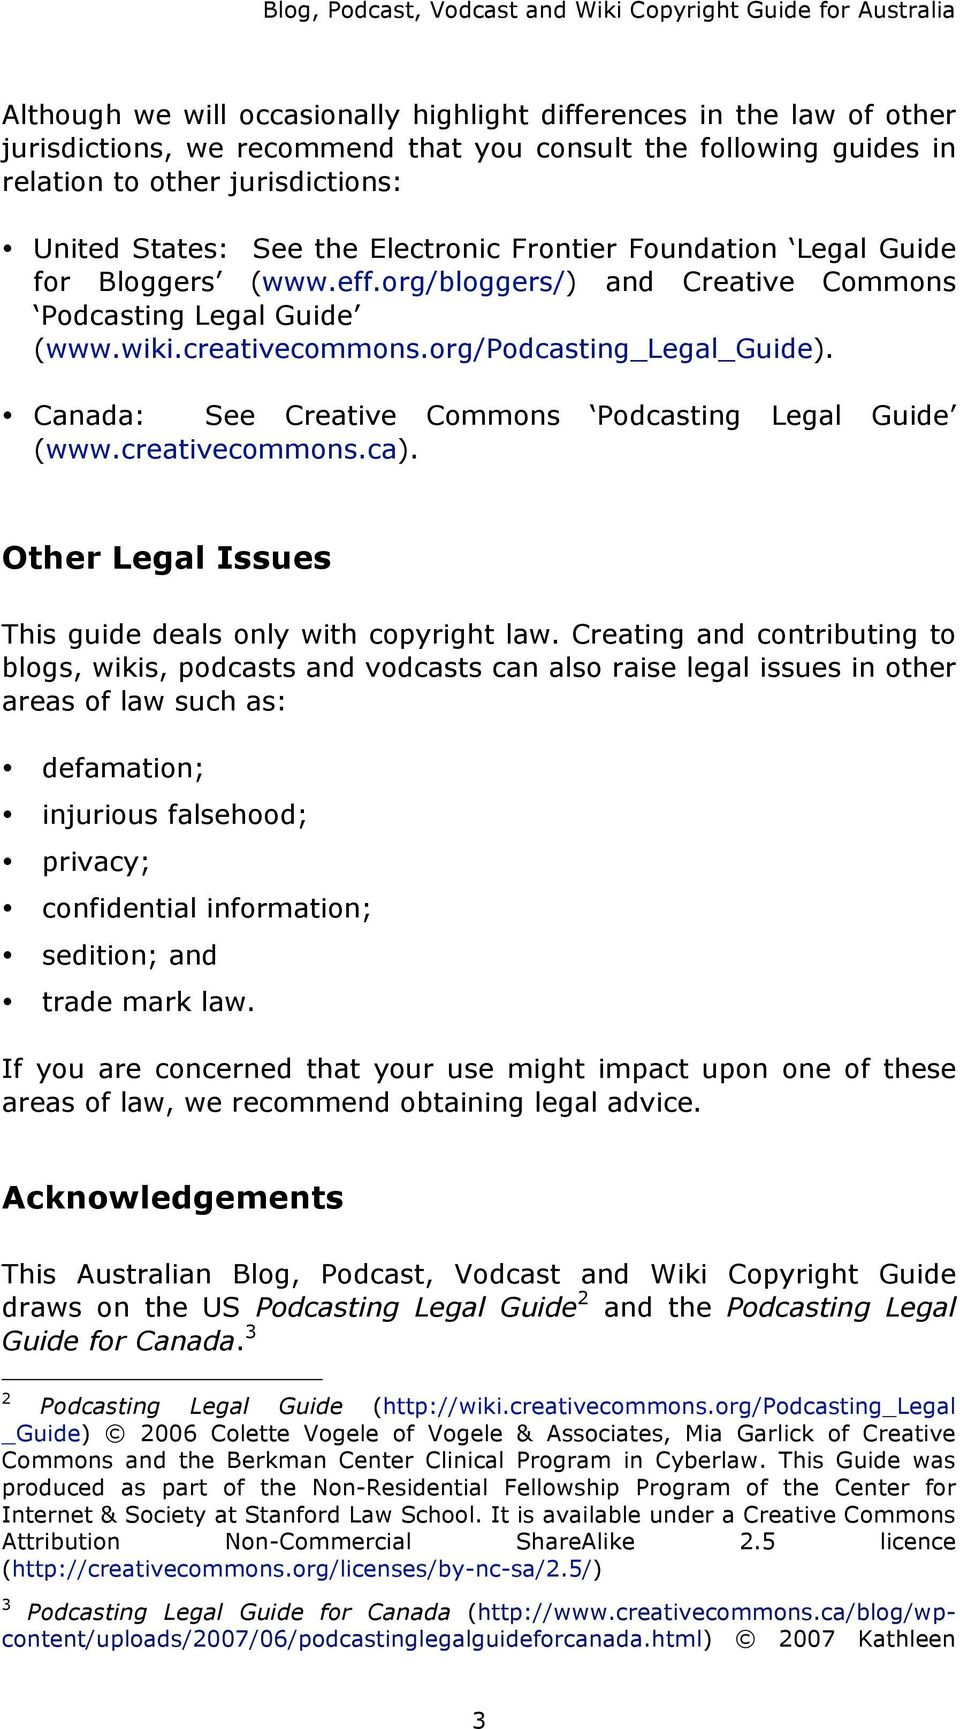 creativecommons.org/podcasting_legal_guide). Canada: See Creative Commons Podcasting Legal Guide (www.creativecommons.ca). Other Legal Issues This guide deals only with copyright law.